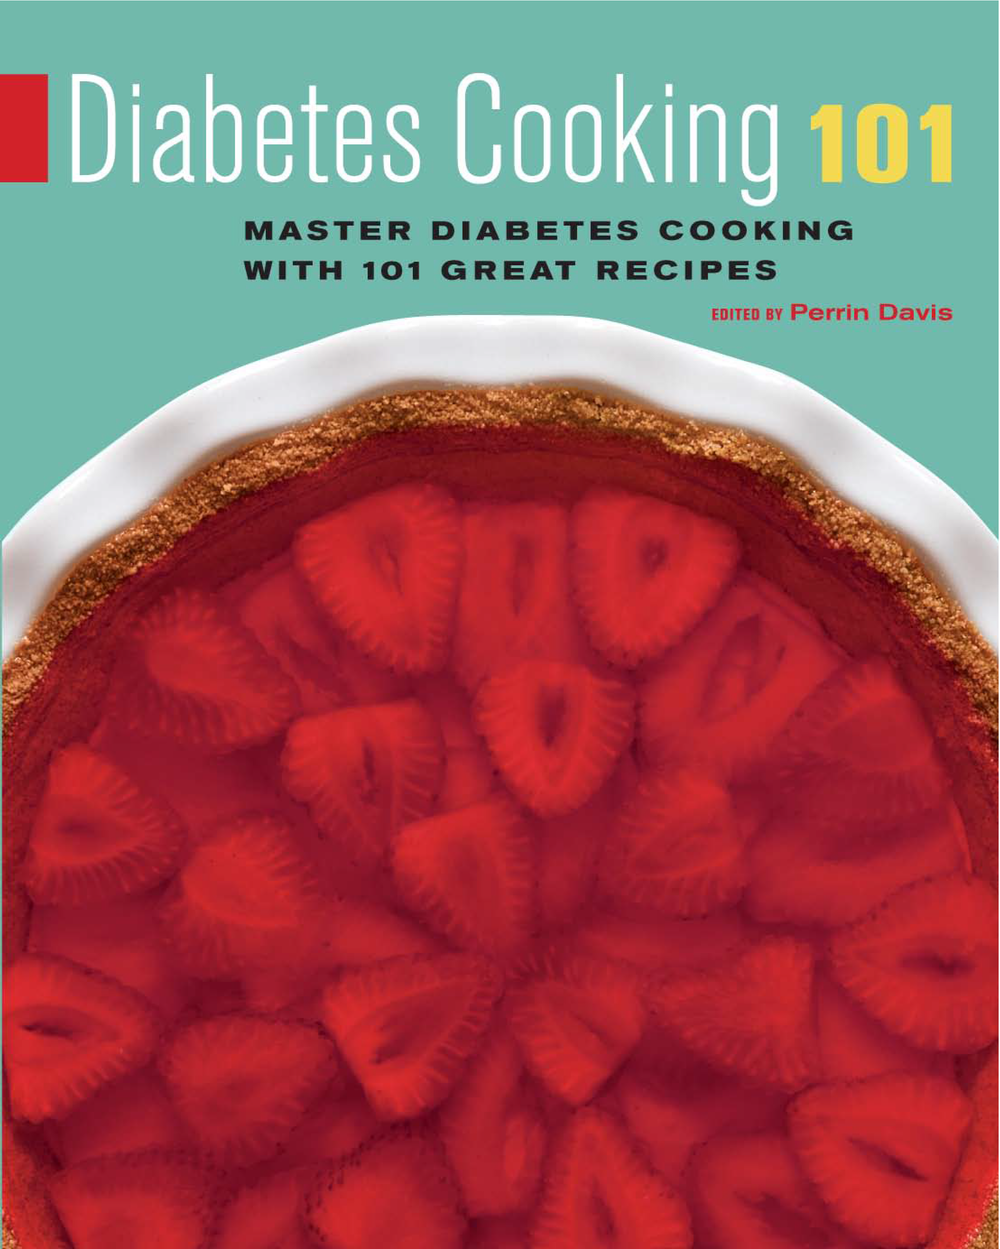 Diabetes Cooking 101_Page_01.png